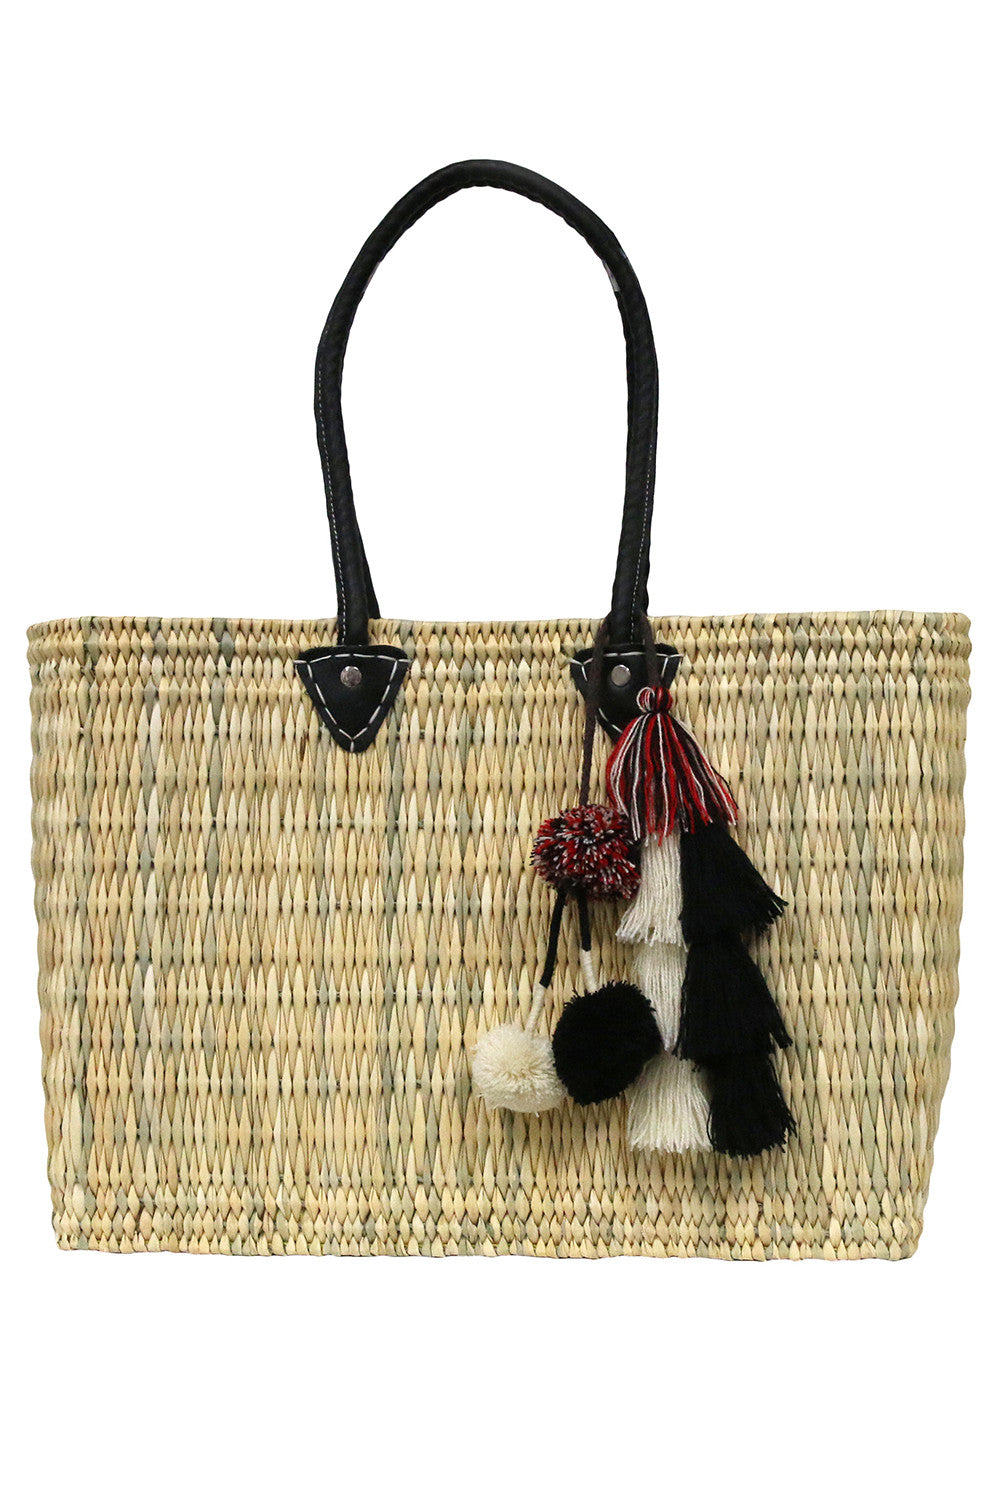 Jane Large Box Bag With Flavia Pompom - MISA Los Angeles